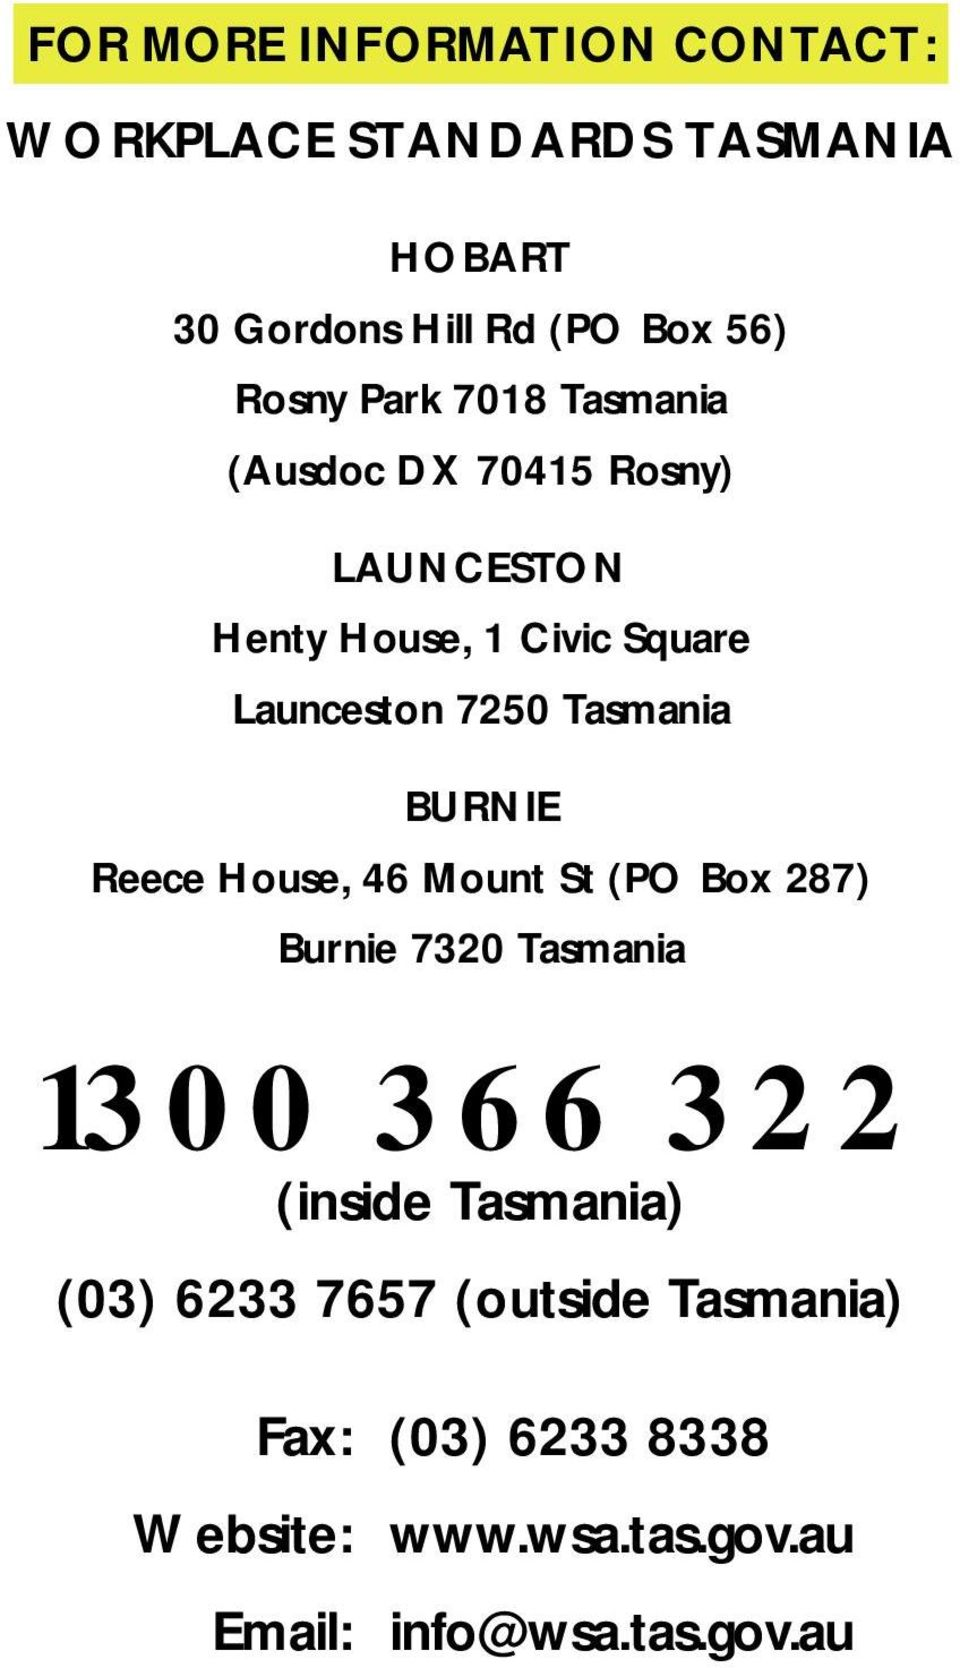 70415 Rosny) LAUNCESTON Henty House, 1 Civic Square Launceston 7250 Tasmania BURNIE Reece House, 46